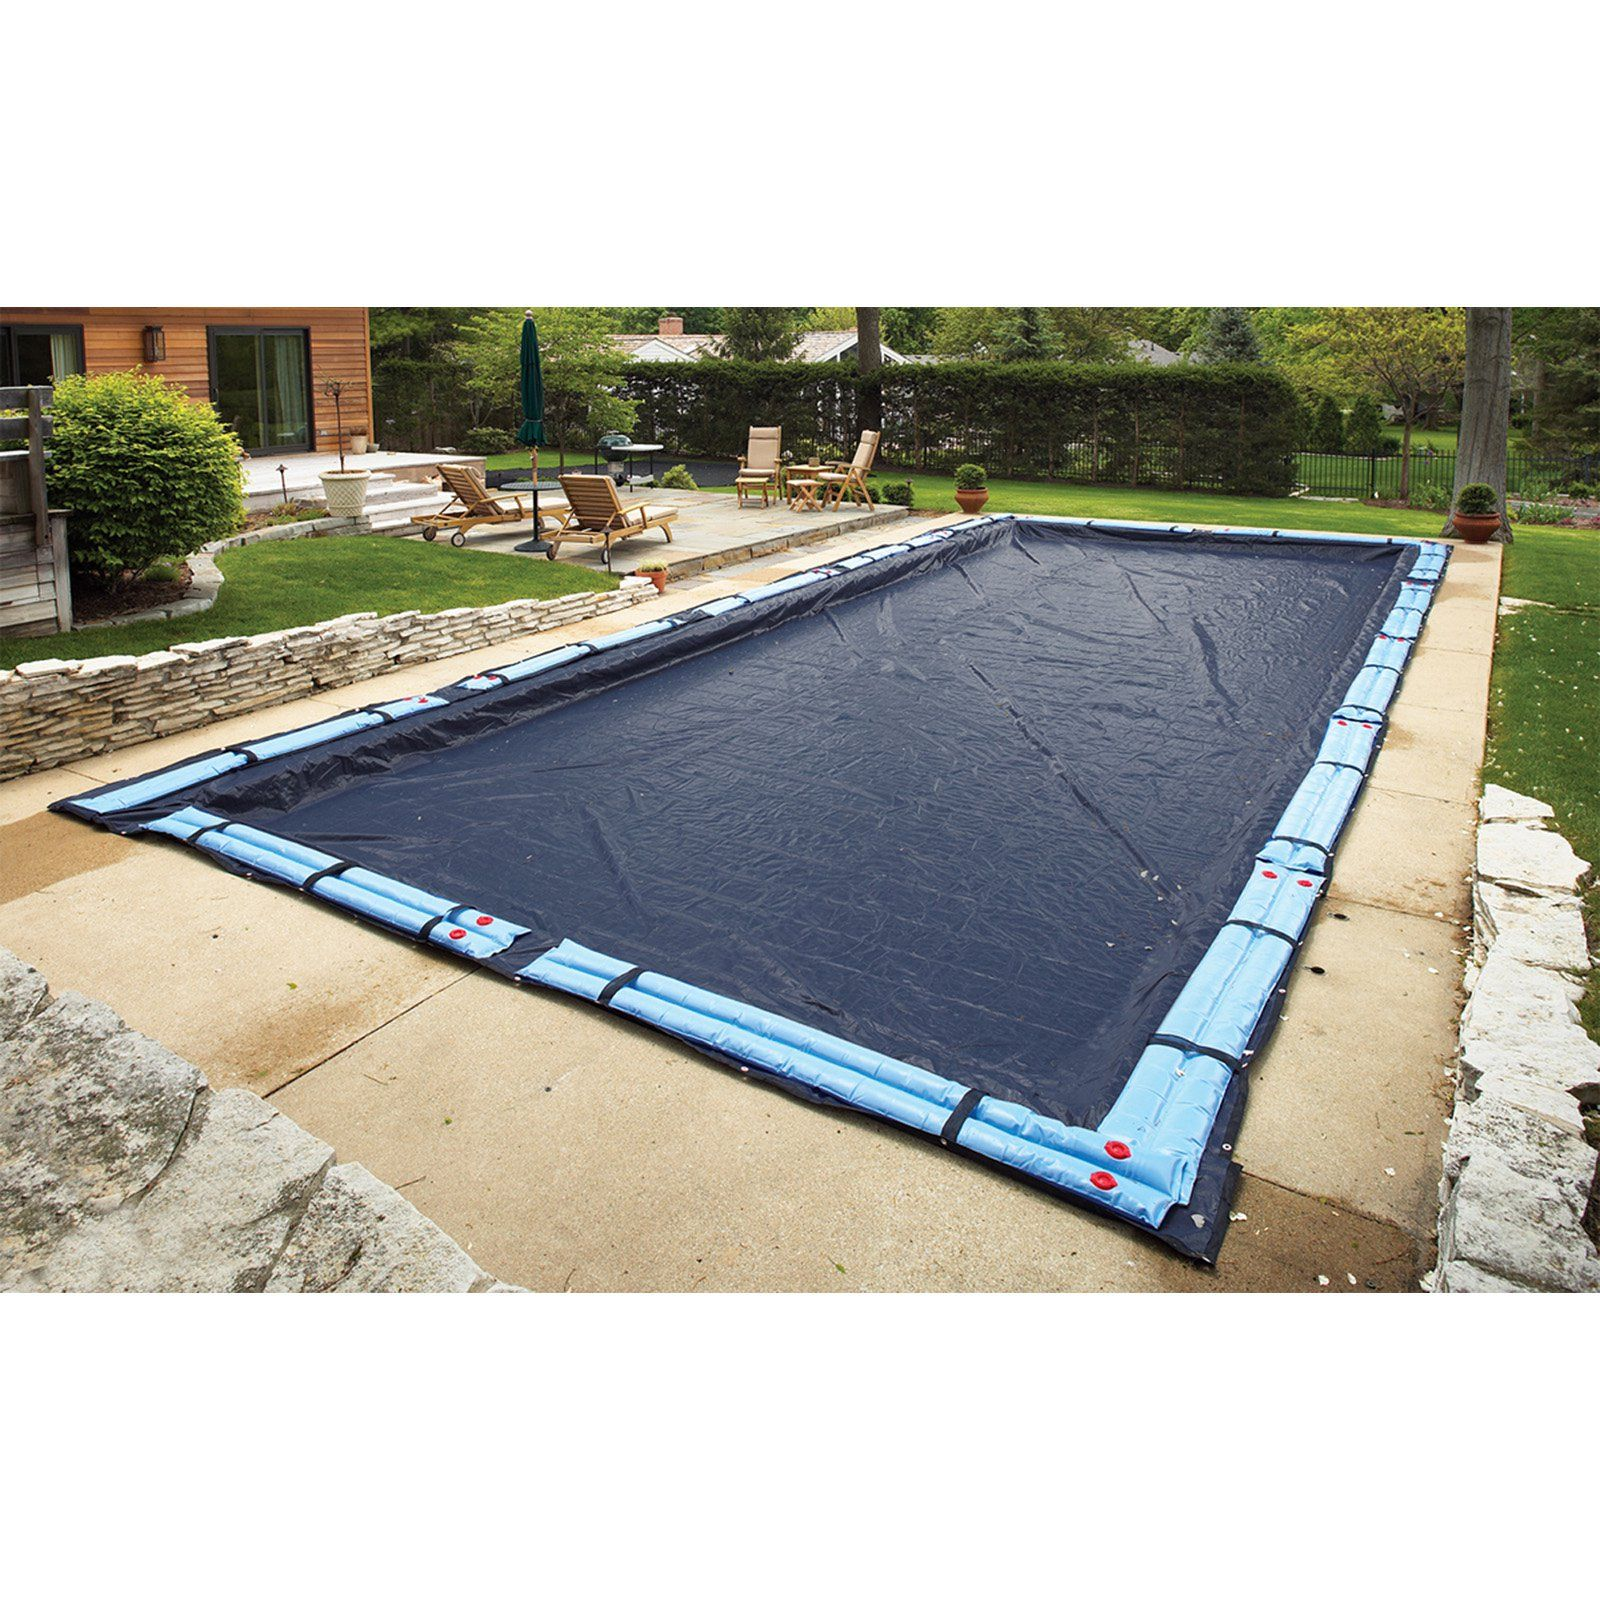 Jacuzzi Pool Covers What You Need To Know Before Getting A New Roof Flat Roof Repair